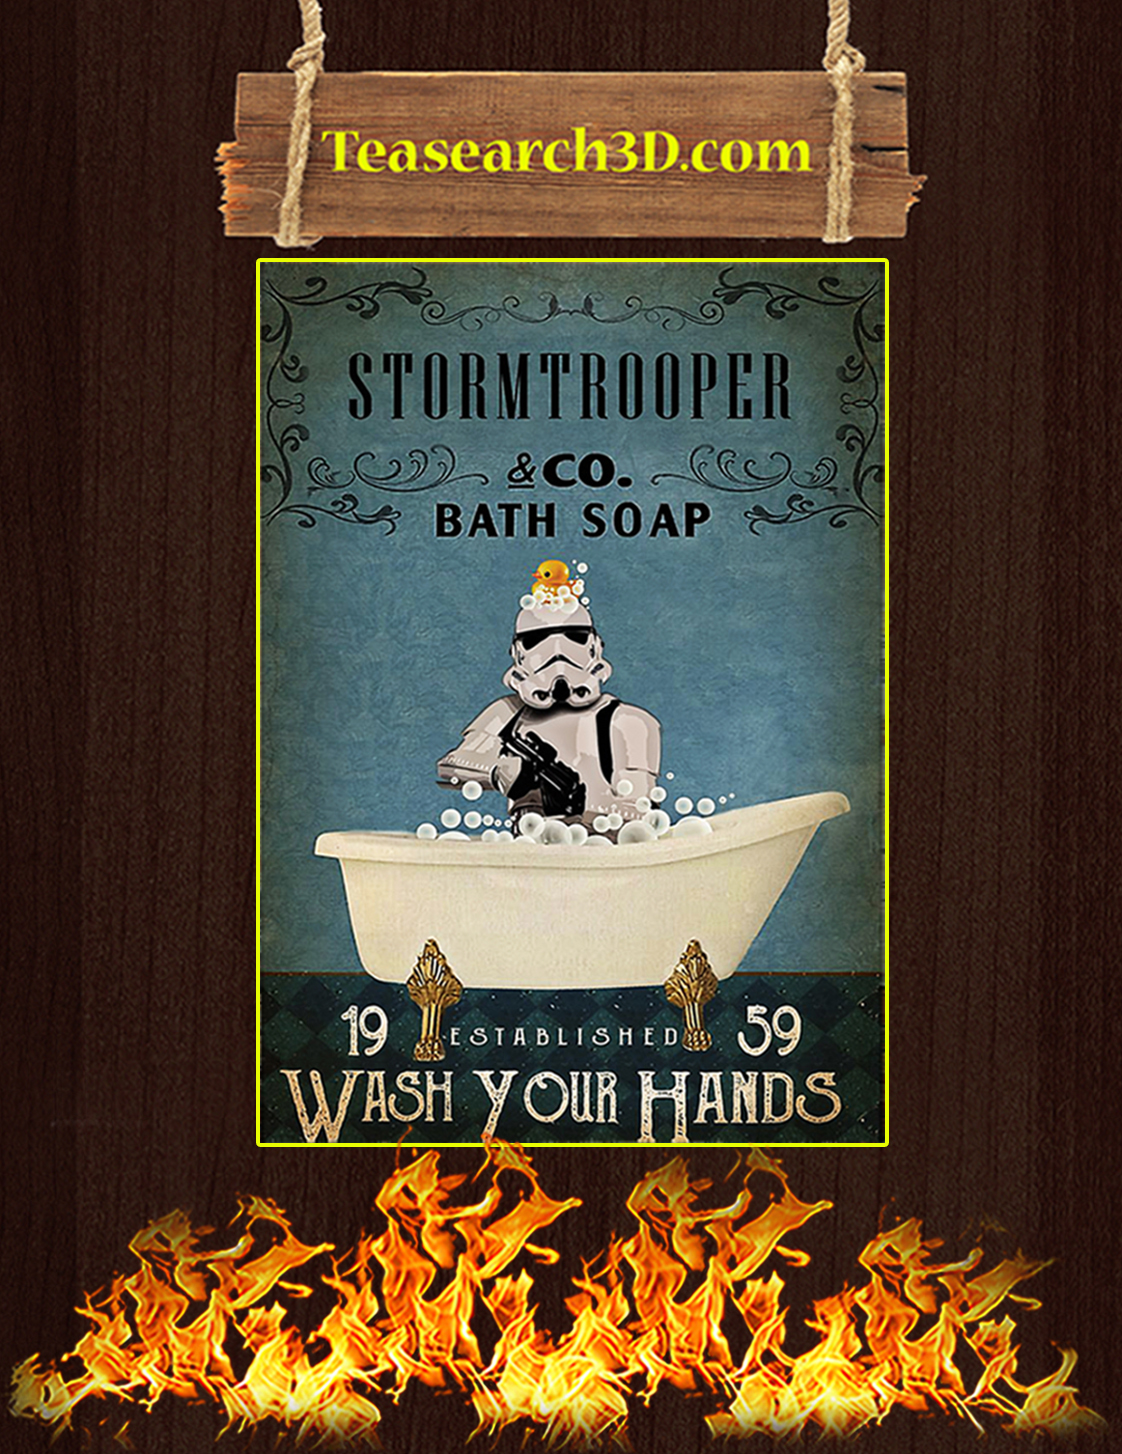 Stormtrooper co bath soap wash your hands poster A3